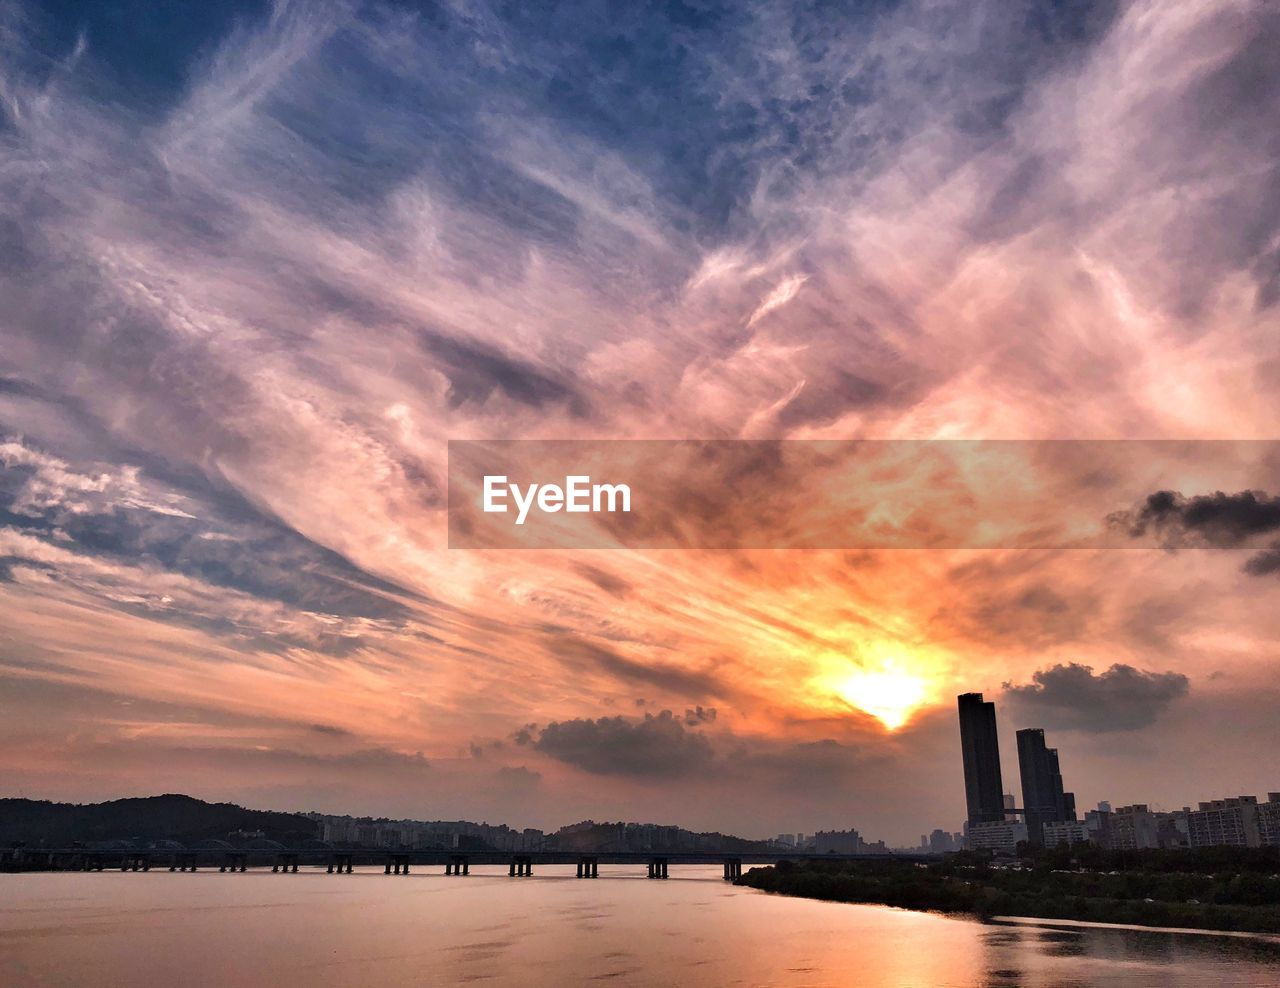 sky, cloud - sky, sunset, architecture, built structure, building exterior, water, waterfront, nature, beauty in nature, orange color, no people, scenics - nature, building, tower, city, outdoors, river, skyscraper, office building exterior